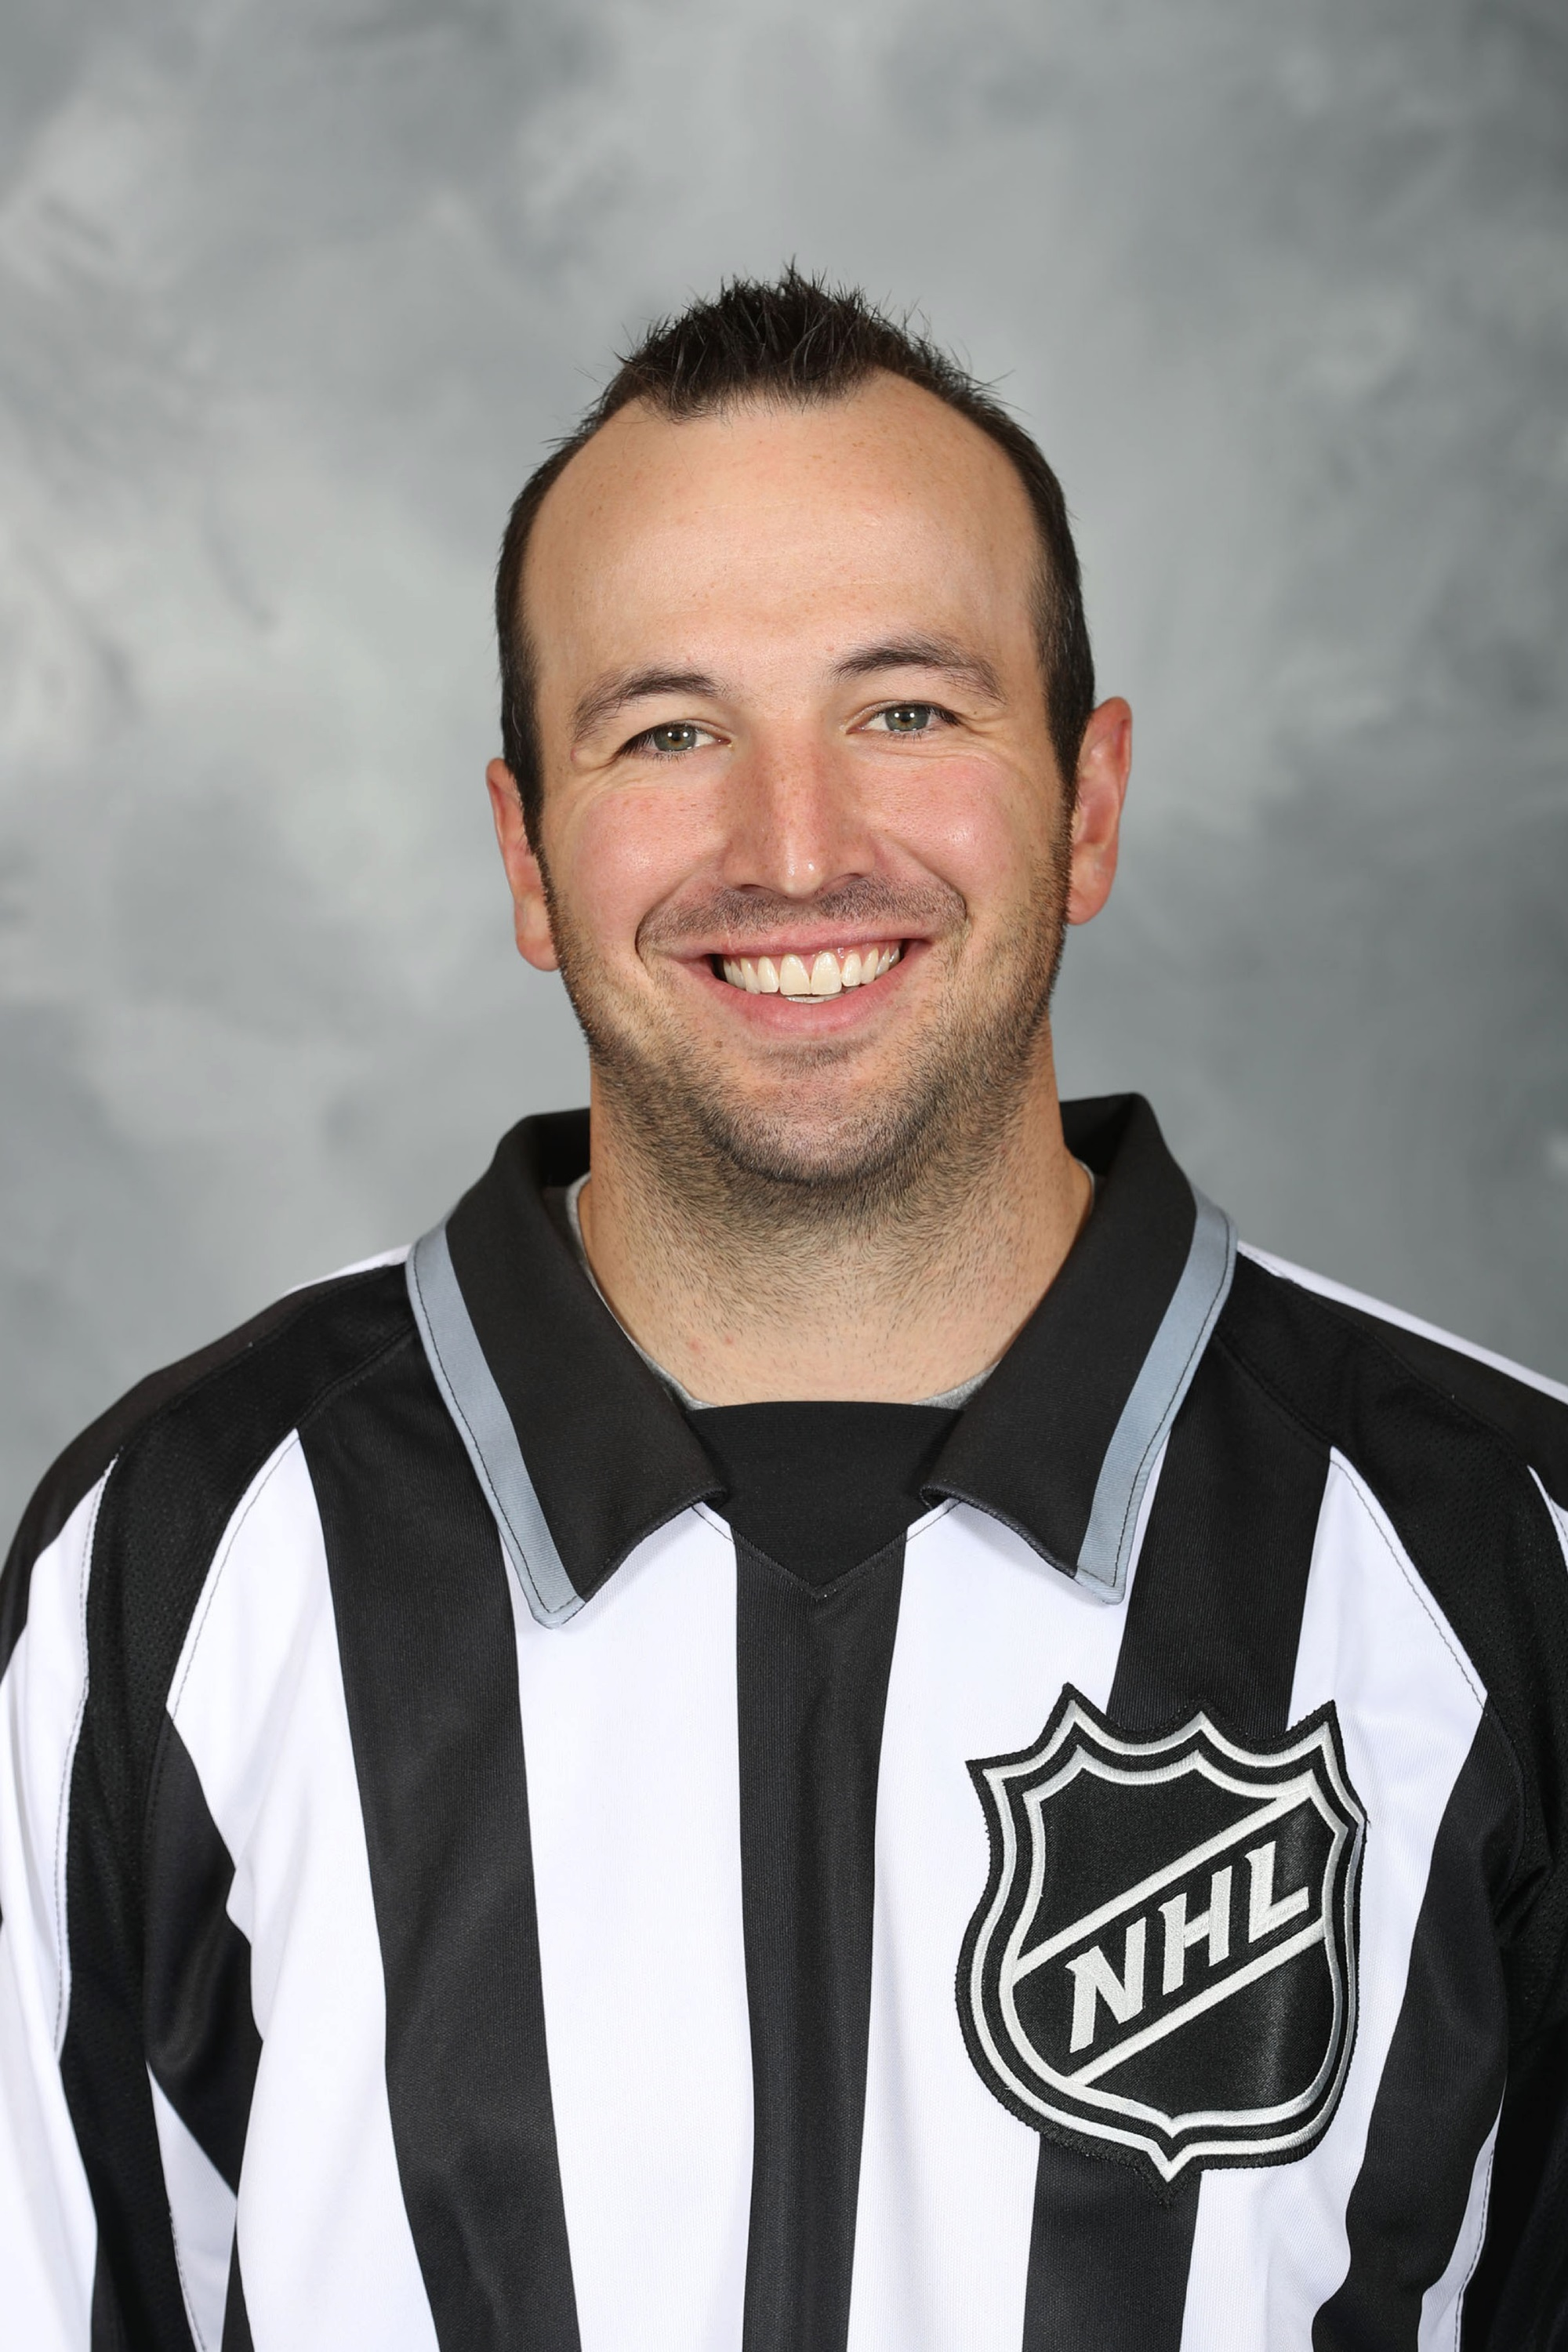 John NHL Headshot